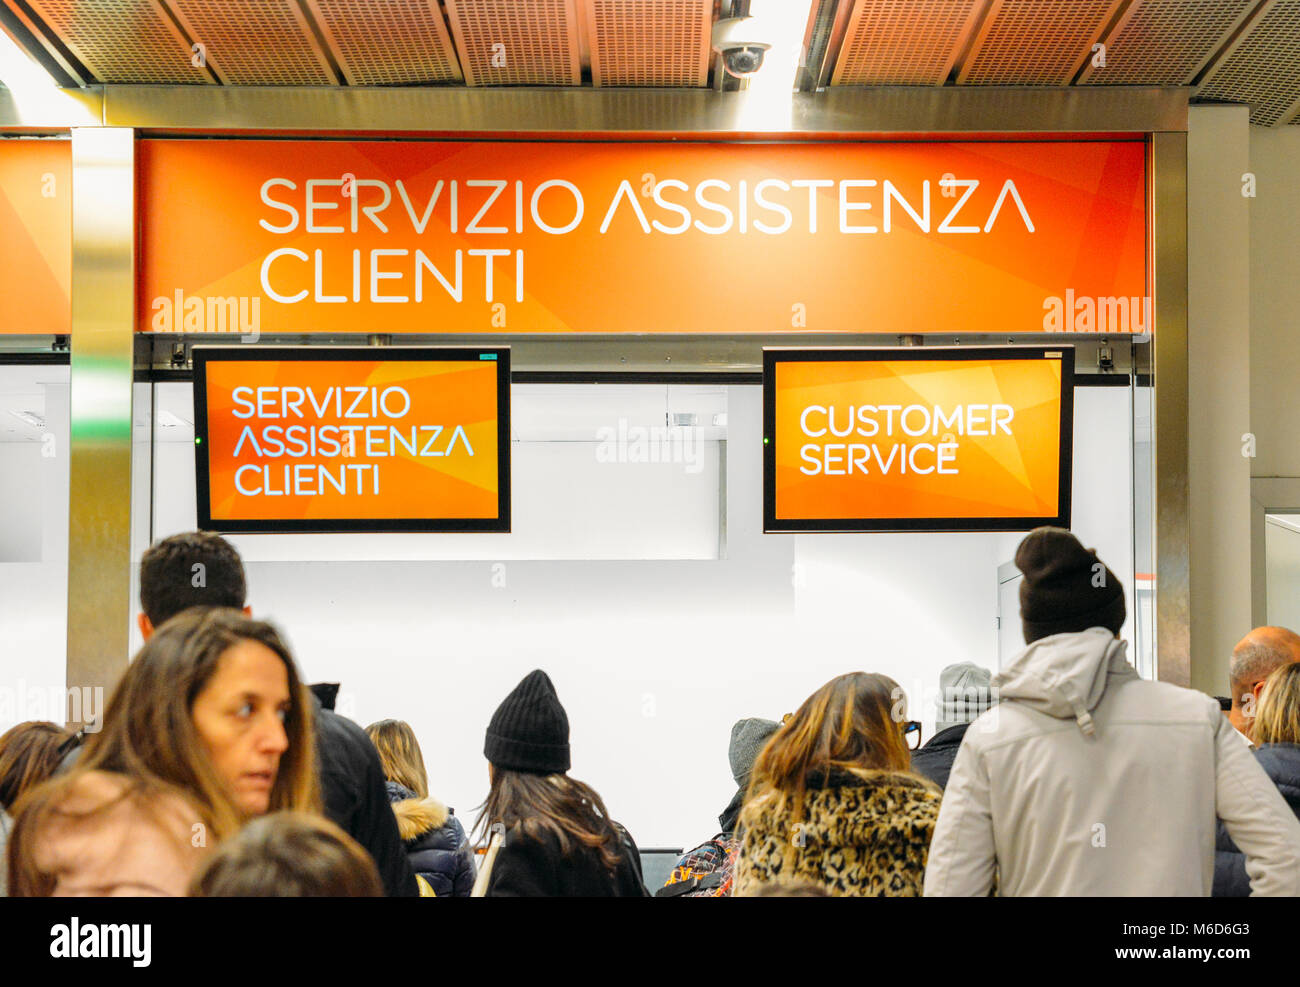 Milan, Italy. 2nd March, 2018. Milan Malpensa Airport - Mar 2nd, 2018: Long queues at the budget airliner, EasyJet, - Stock Image